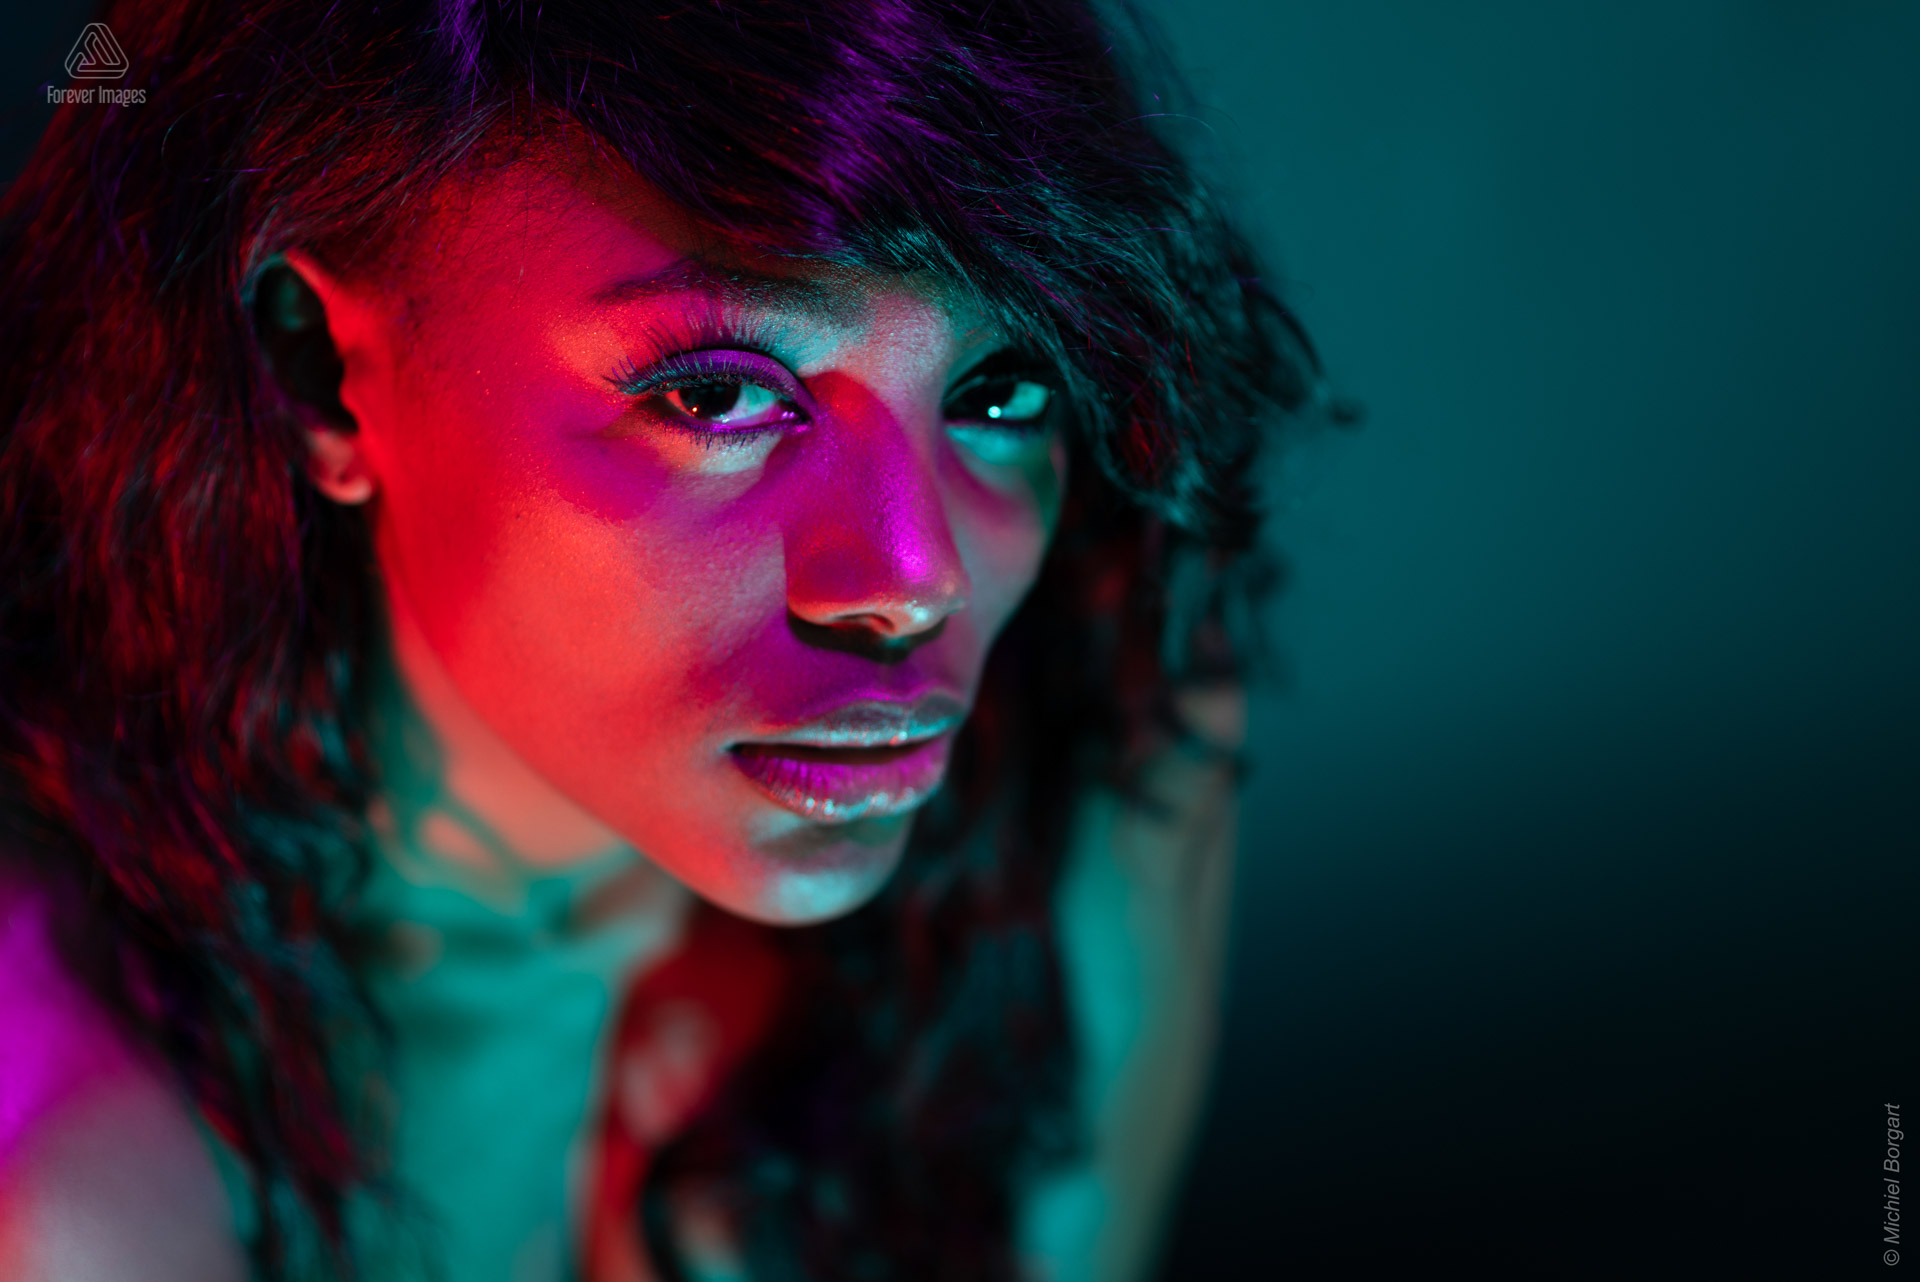 Portrait photo model purple red green light from above low key | Mariana Pietersz Miss Avantgarde | Portrait Photographer Michiel Borgart - Forever Images.